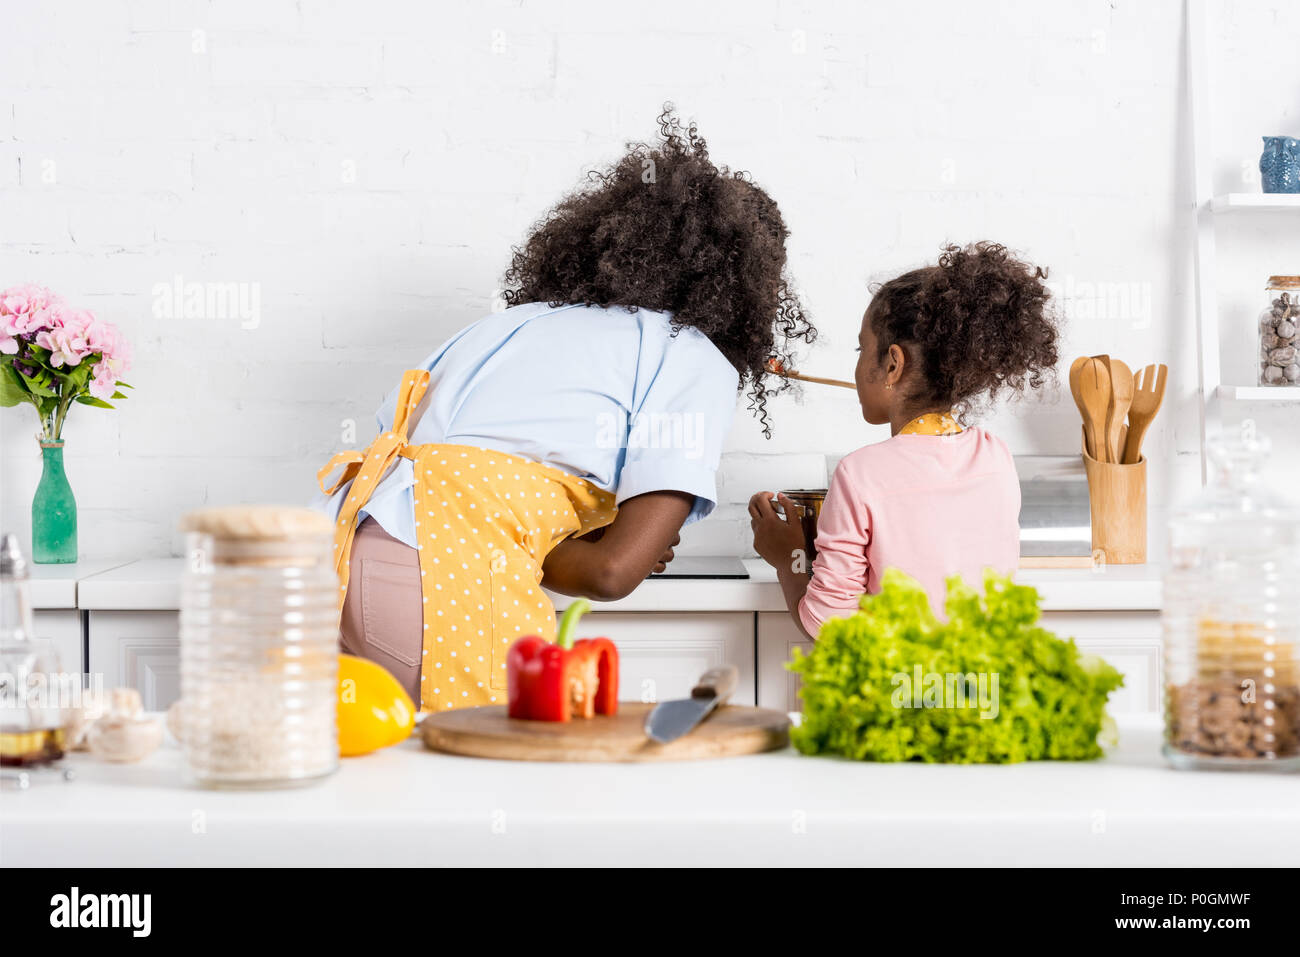 Back View Of African American Mother And Child Cooking On Kitchen